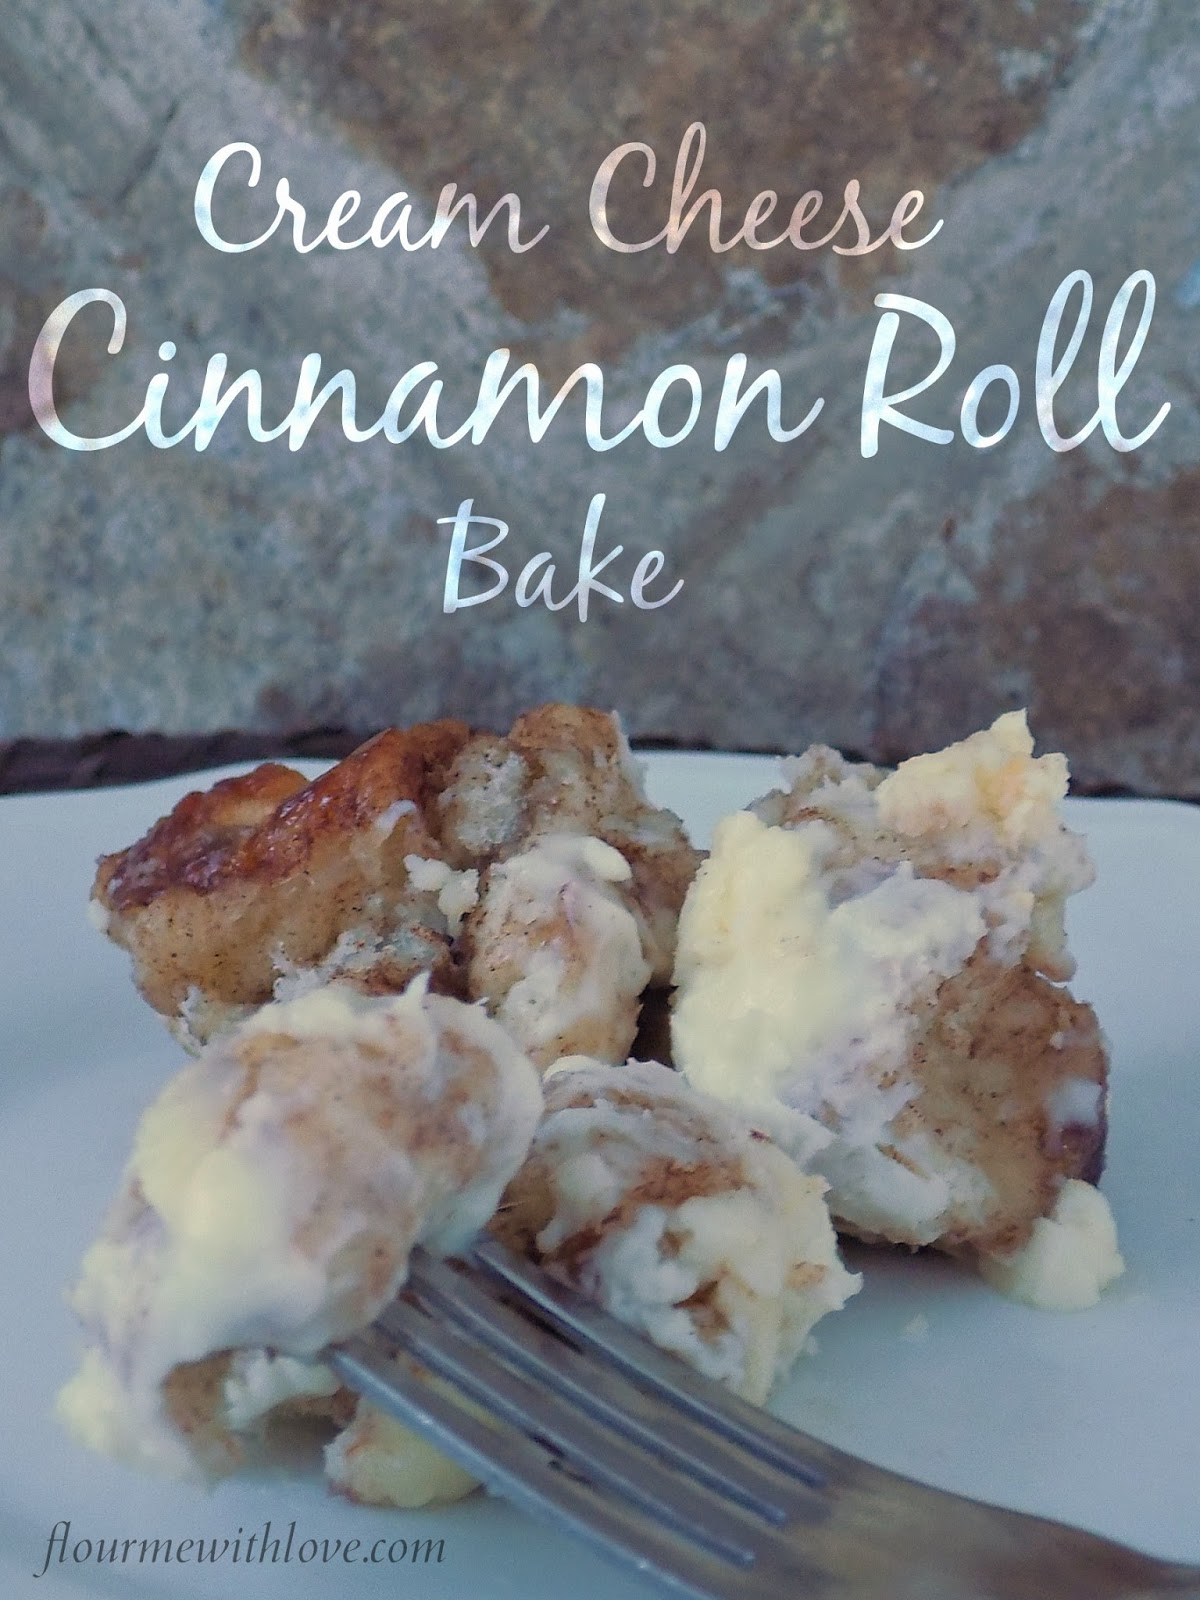 Cream Cheese Cinnamon Roll Bake Flour Me With Love